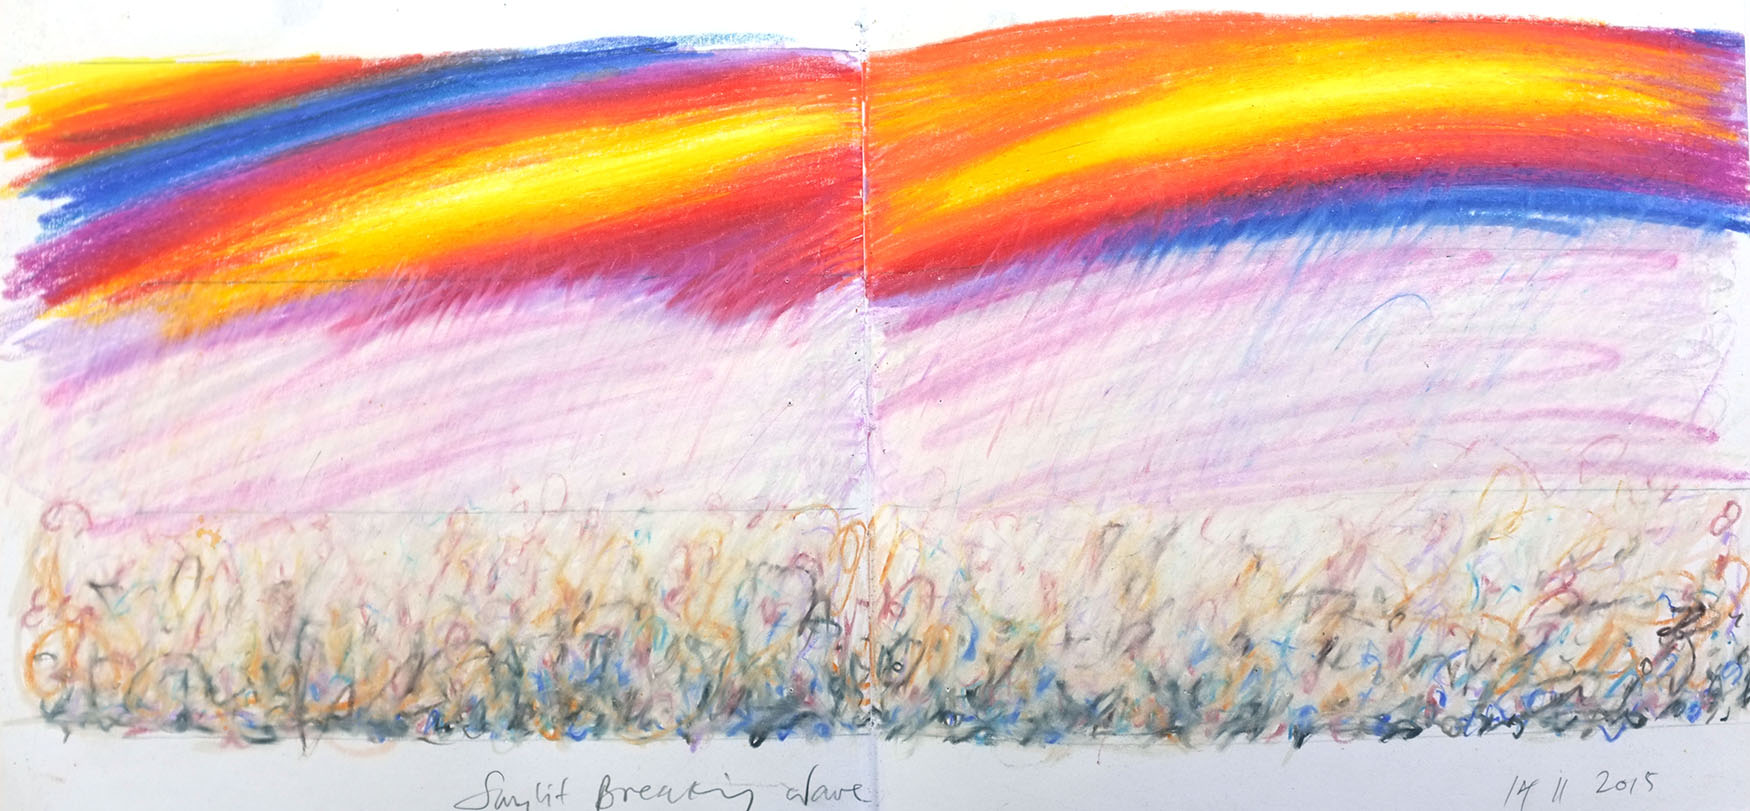 Sketch book, pencil on paper, Sunset Wave